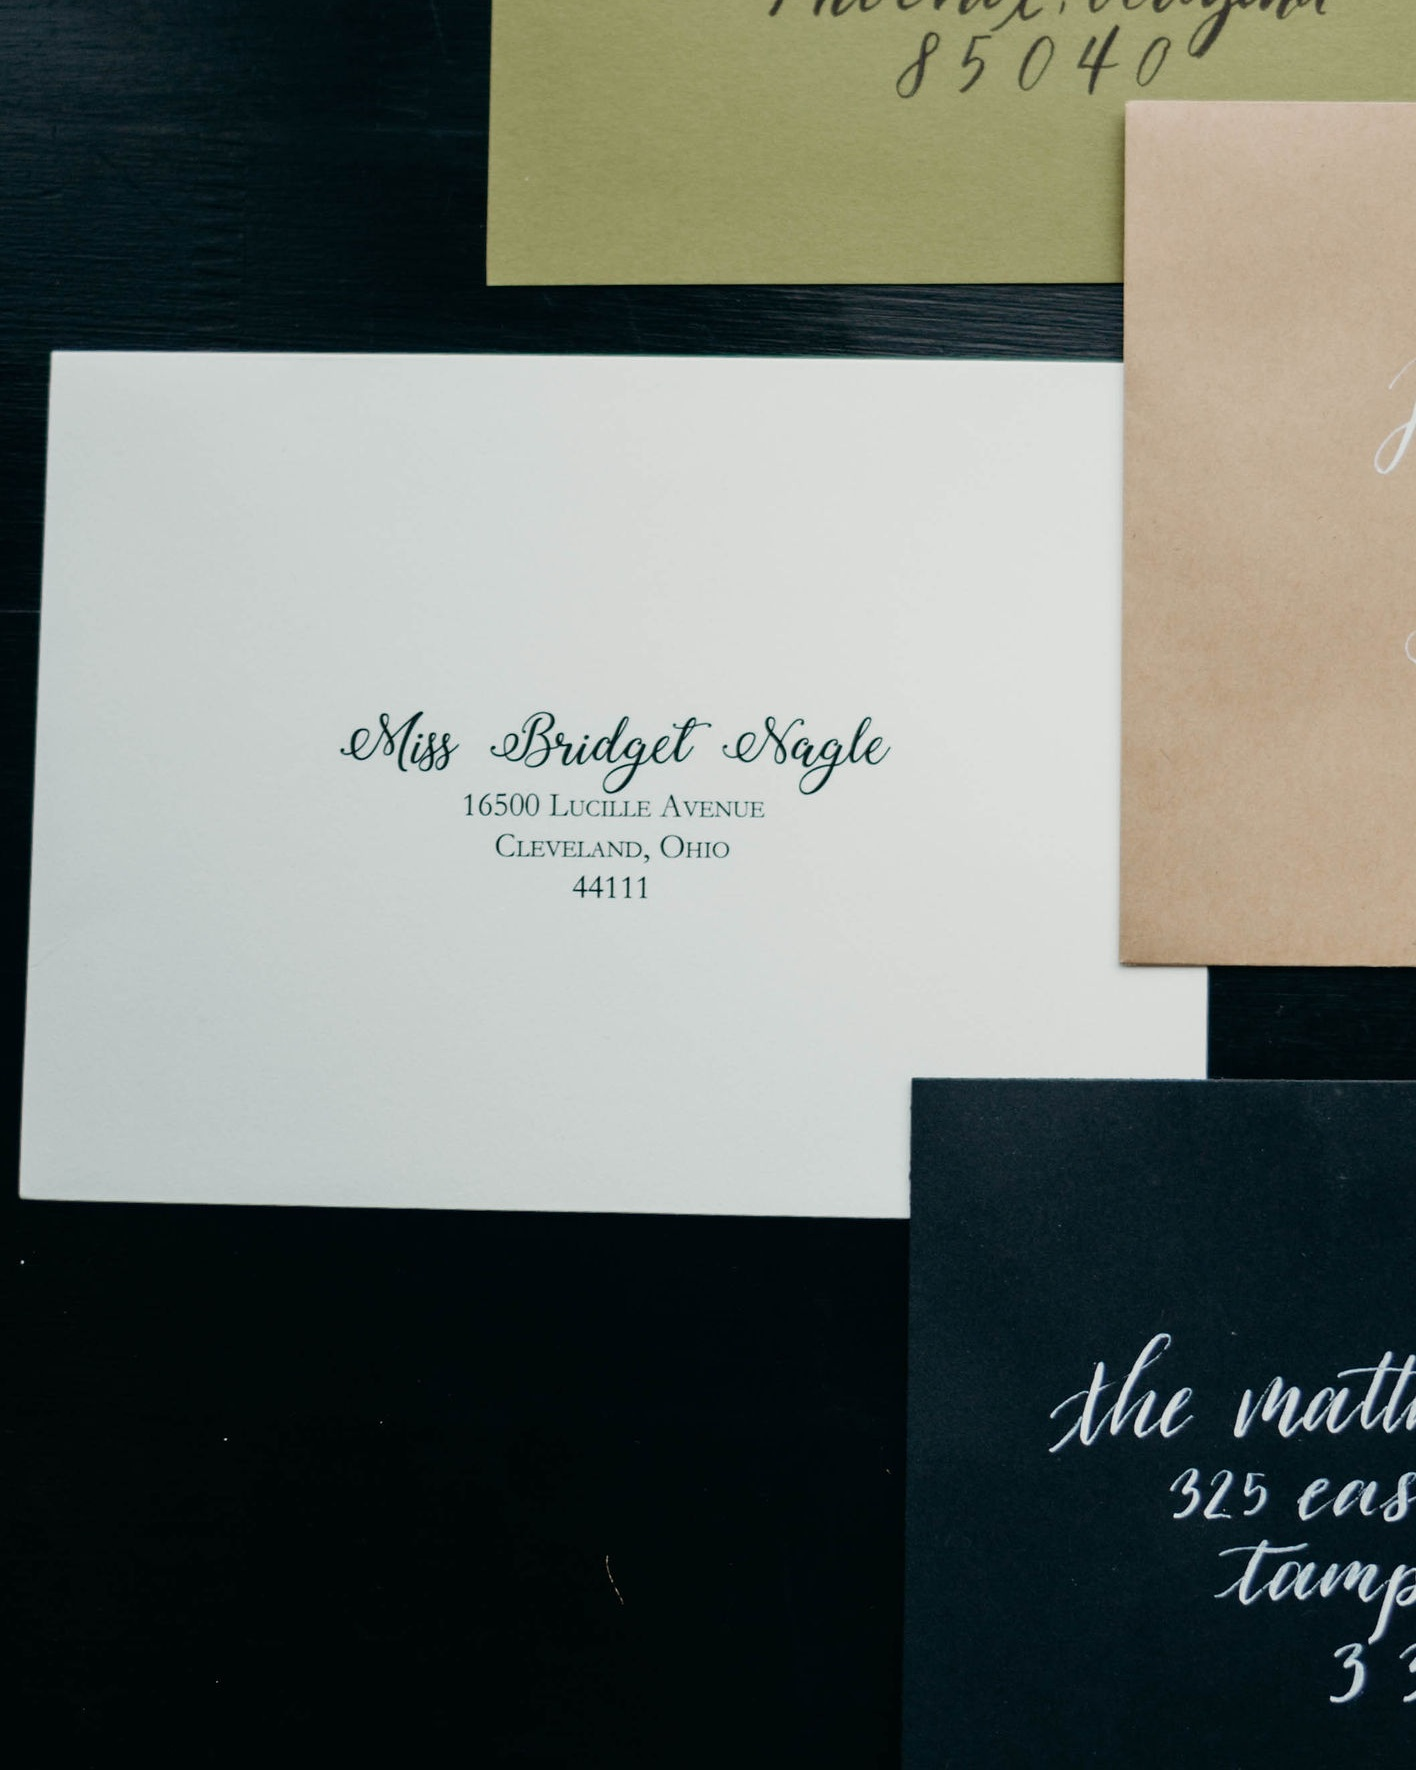 Tier Three: Digital Printing - Our tier three envelopes can help in any time crunch. We will work together to select a style or combination of fonts that fit your vision and perfectly print each address for you! This service also includes your return address digitally printed on the back of your envelope.Invitation Envelope: 1.25 ppRSVP Envelope: .75 pp